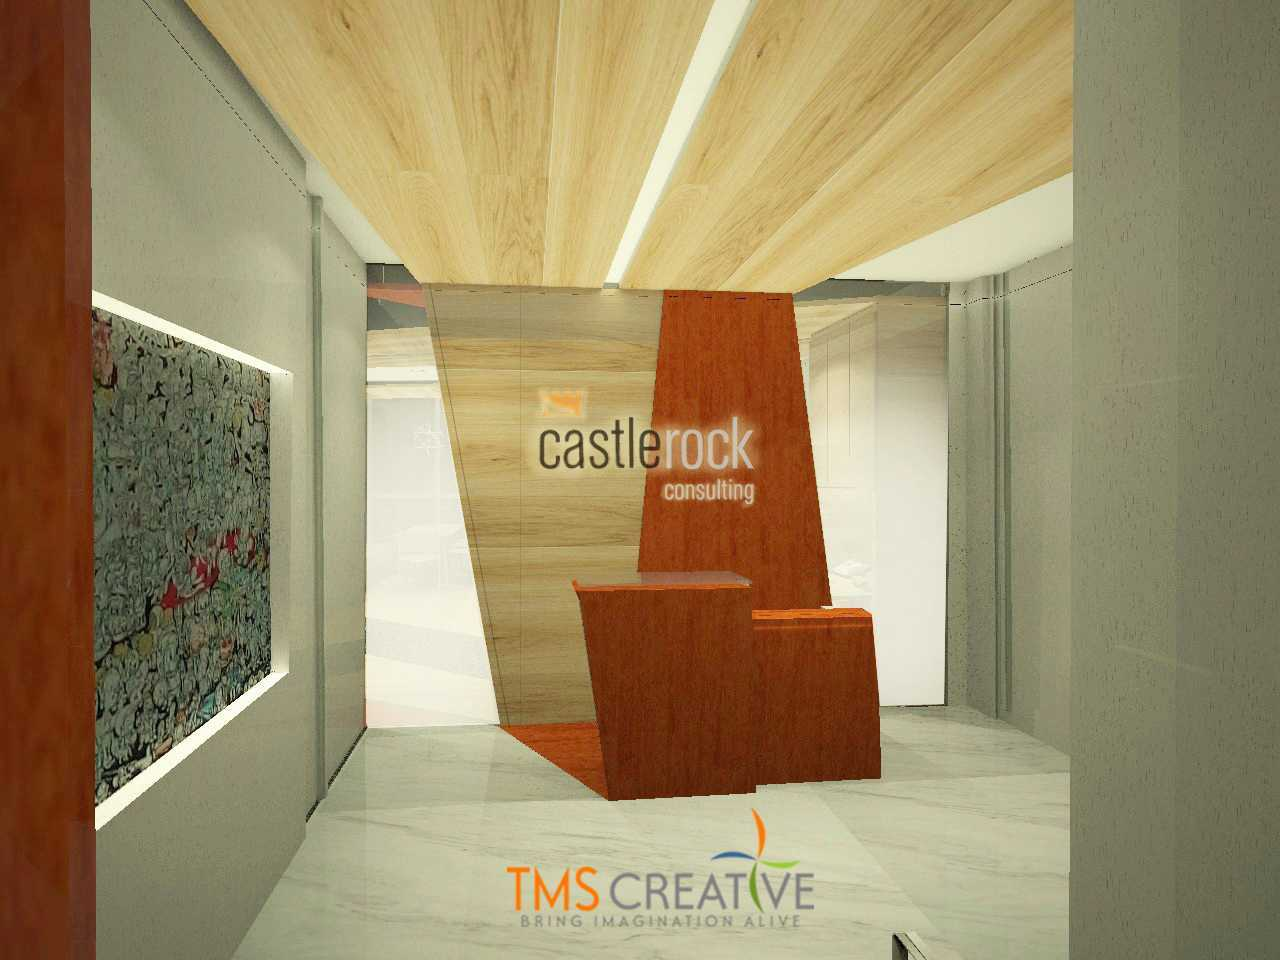 Tms Creative Pt Castlerock Consulting Office  Kebayoran Baru Jakarta Kebayoran Baru Jakarta Tmscastlerock-01Lobby-Rec-Wlogo Modern 39491